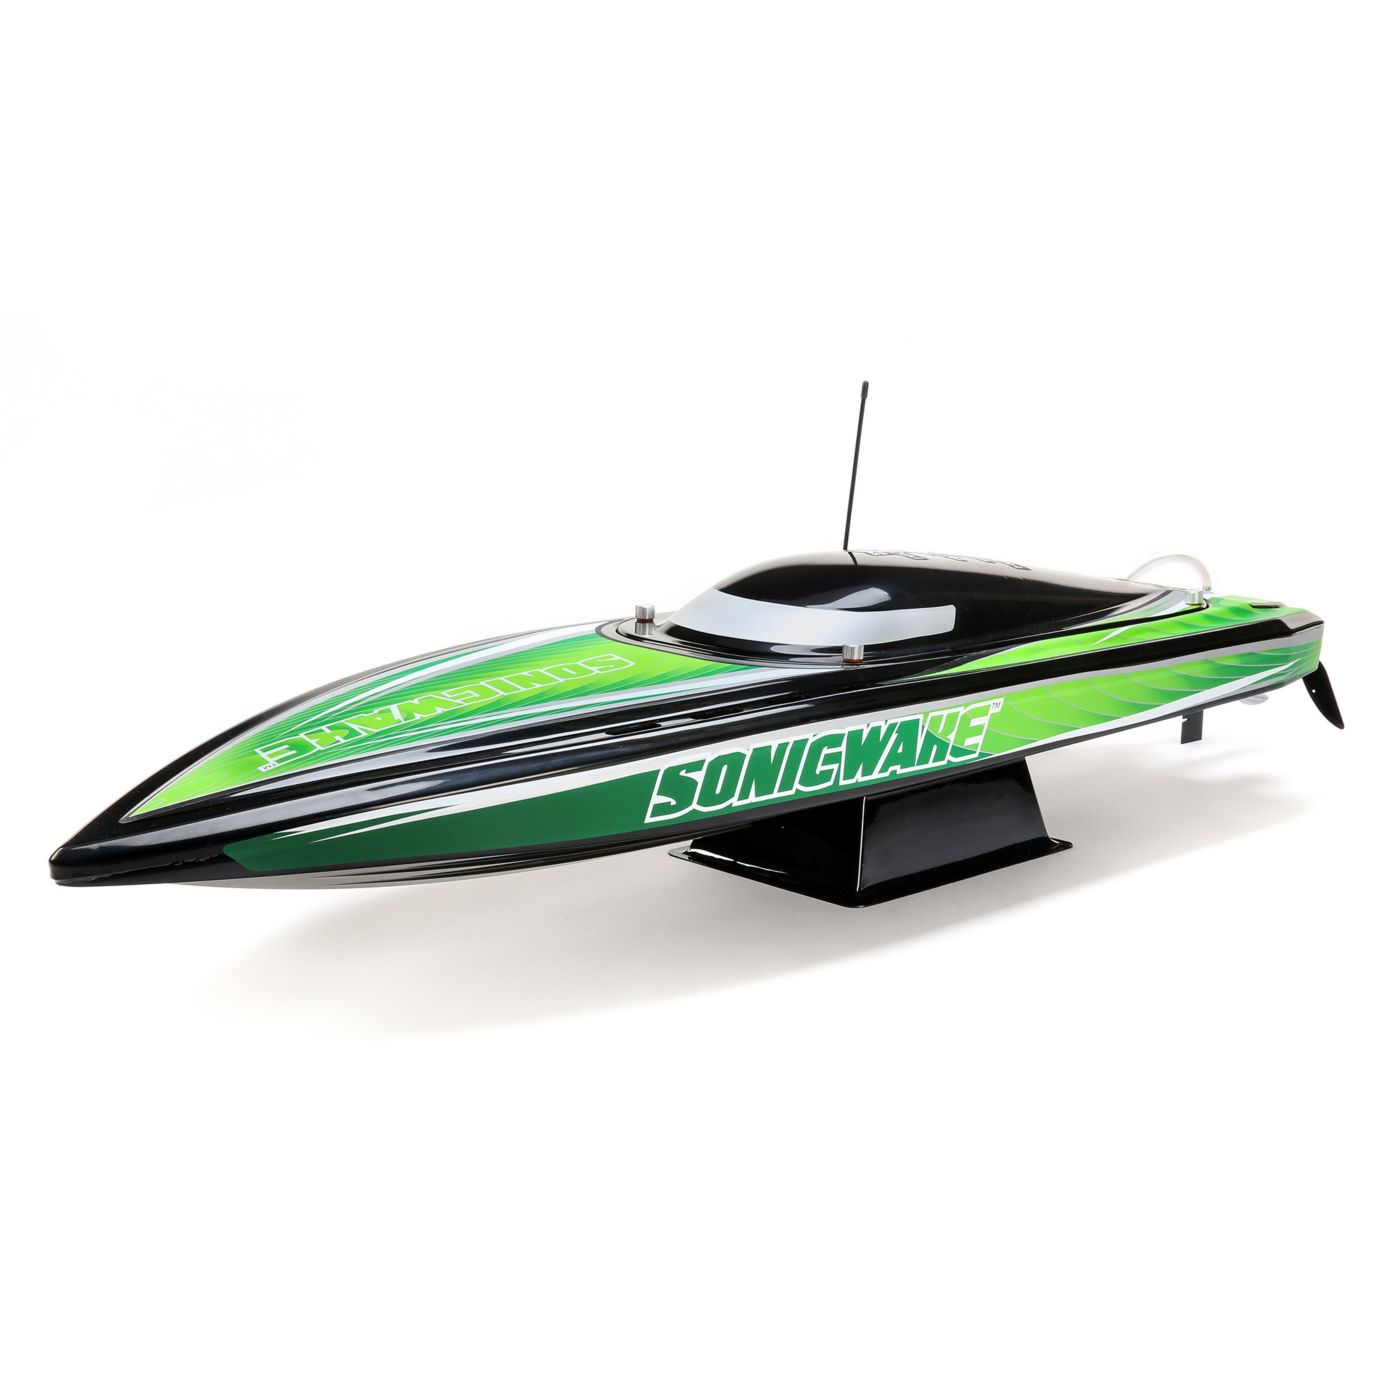 Make Waves with the Pro Boat SonicWake 36″ R/C Speed Boat